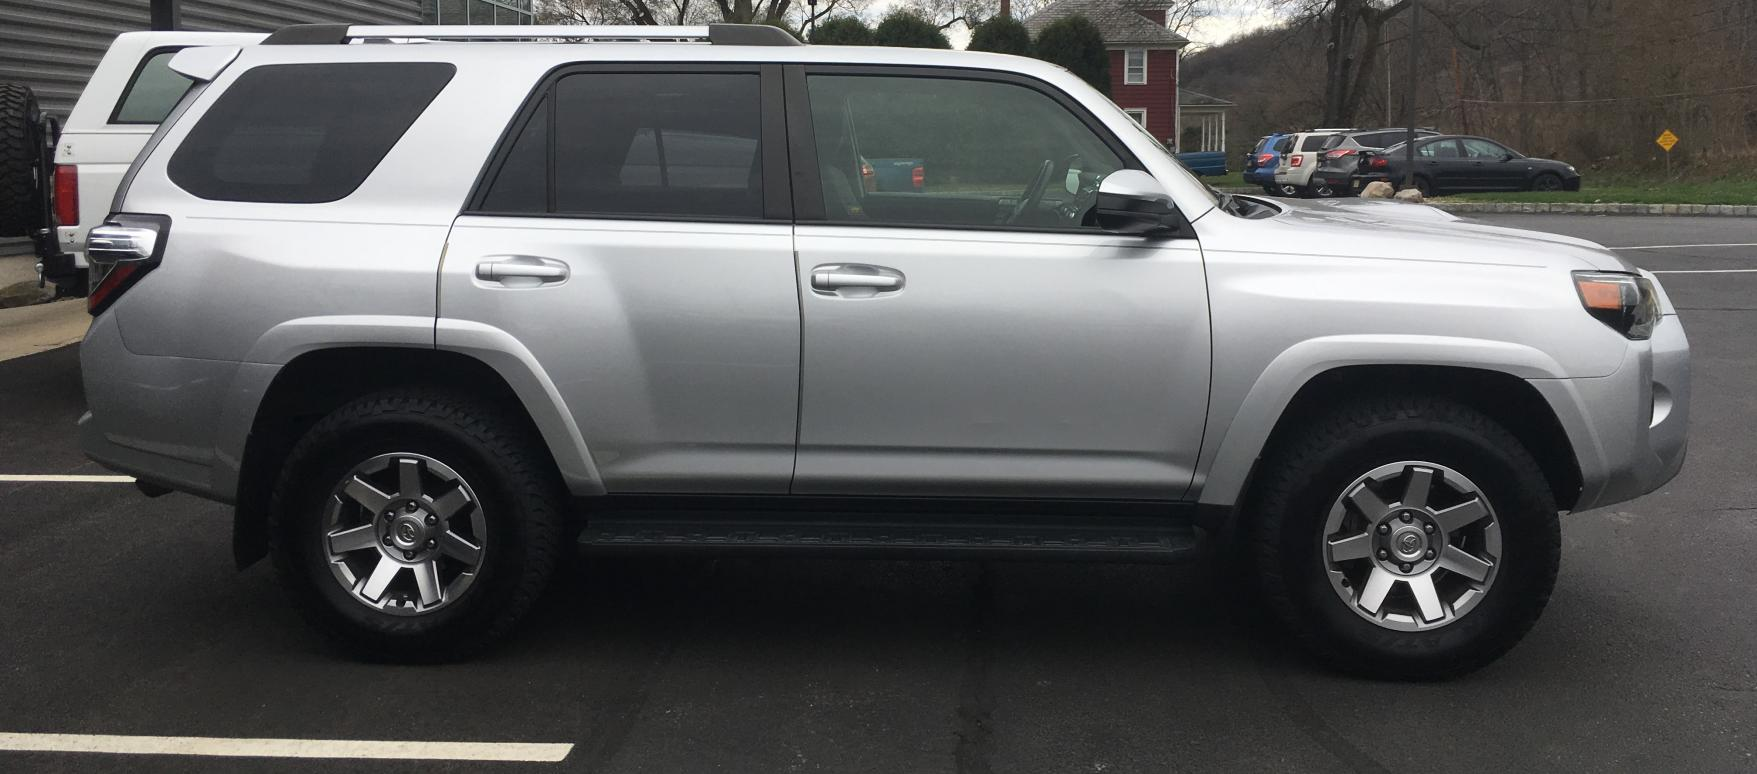 4Runner Picture Gallery (All Gens)-pass-side-before-3inch-lift-2-jpg